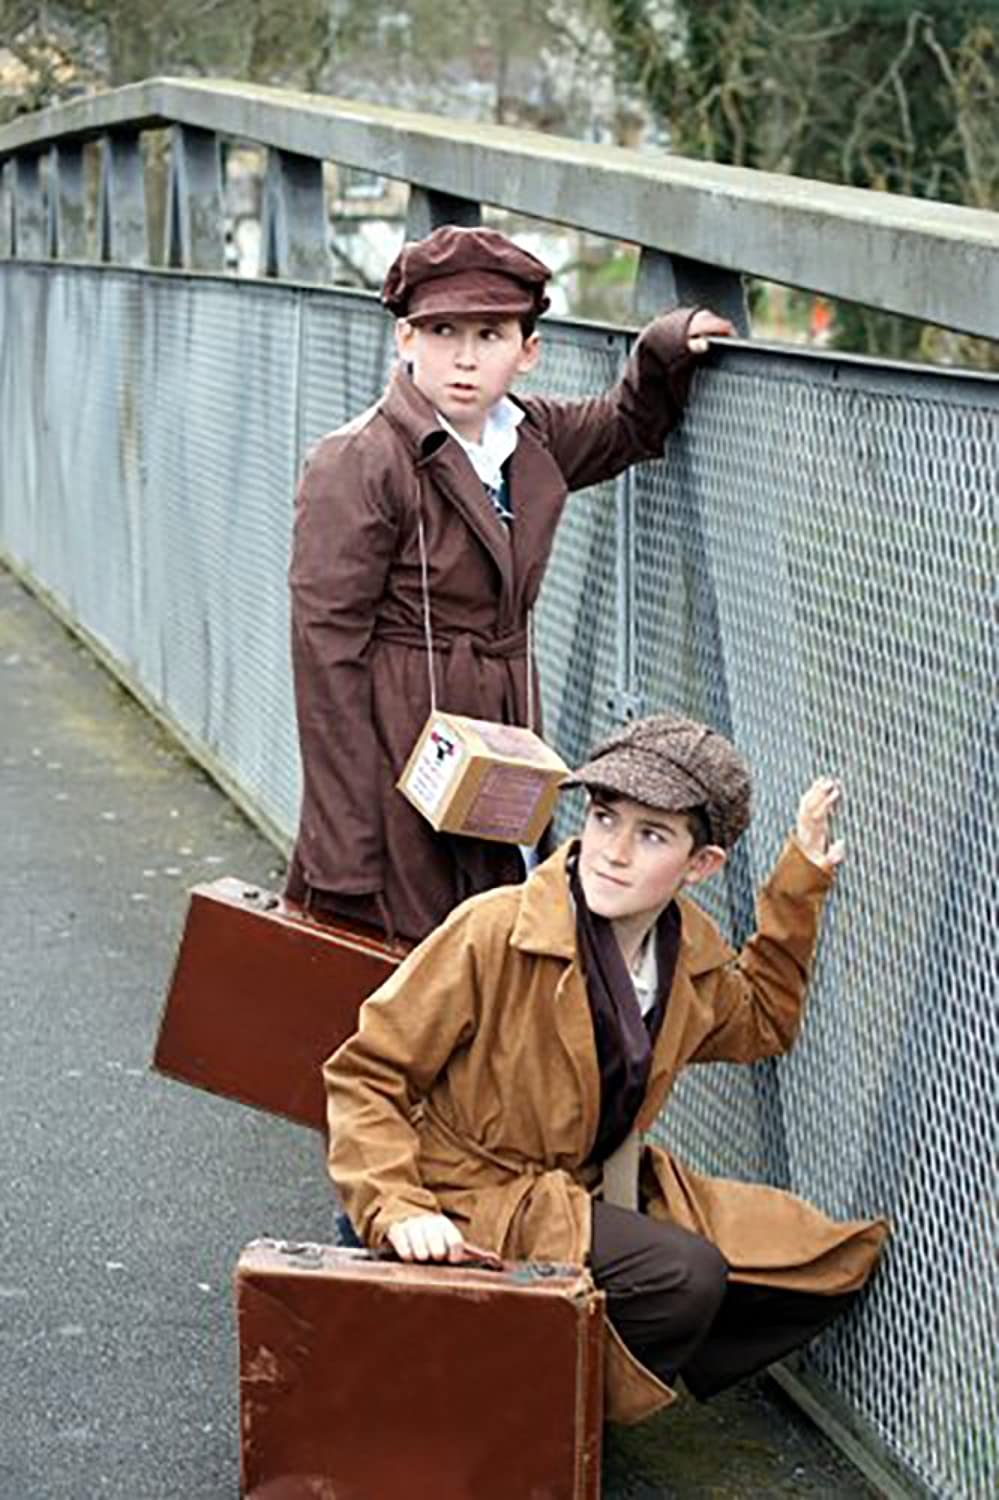 Vintage Style Children's Clothing: Girls, Boys, Baby, Toddler 1940s-WW2-Wartime TAN EVACUEE BOY INCLUDES COAT GAS MASK BOX & CAP World Book Day Fancy Dress $36.99 AT vintagedancer.com